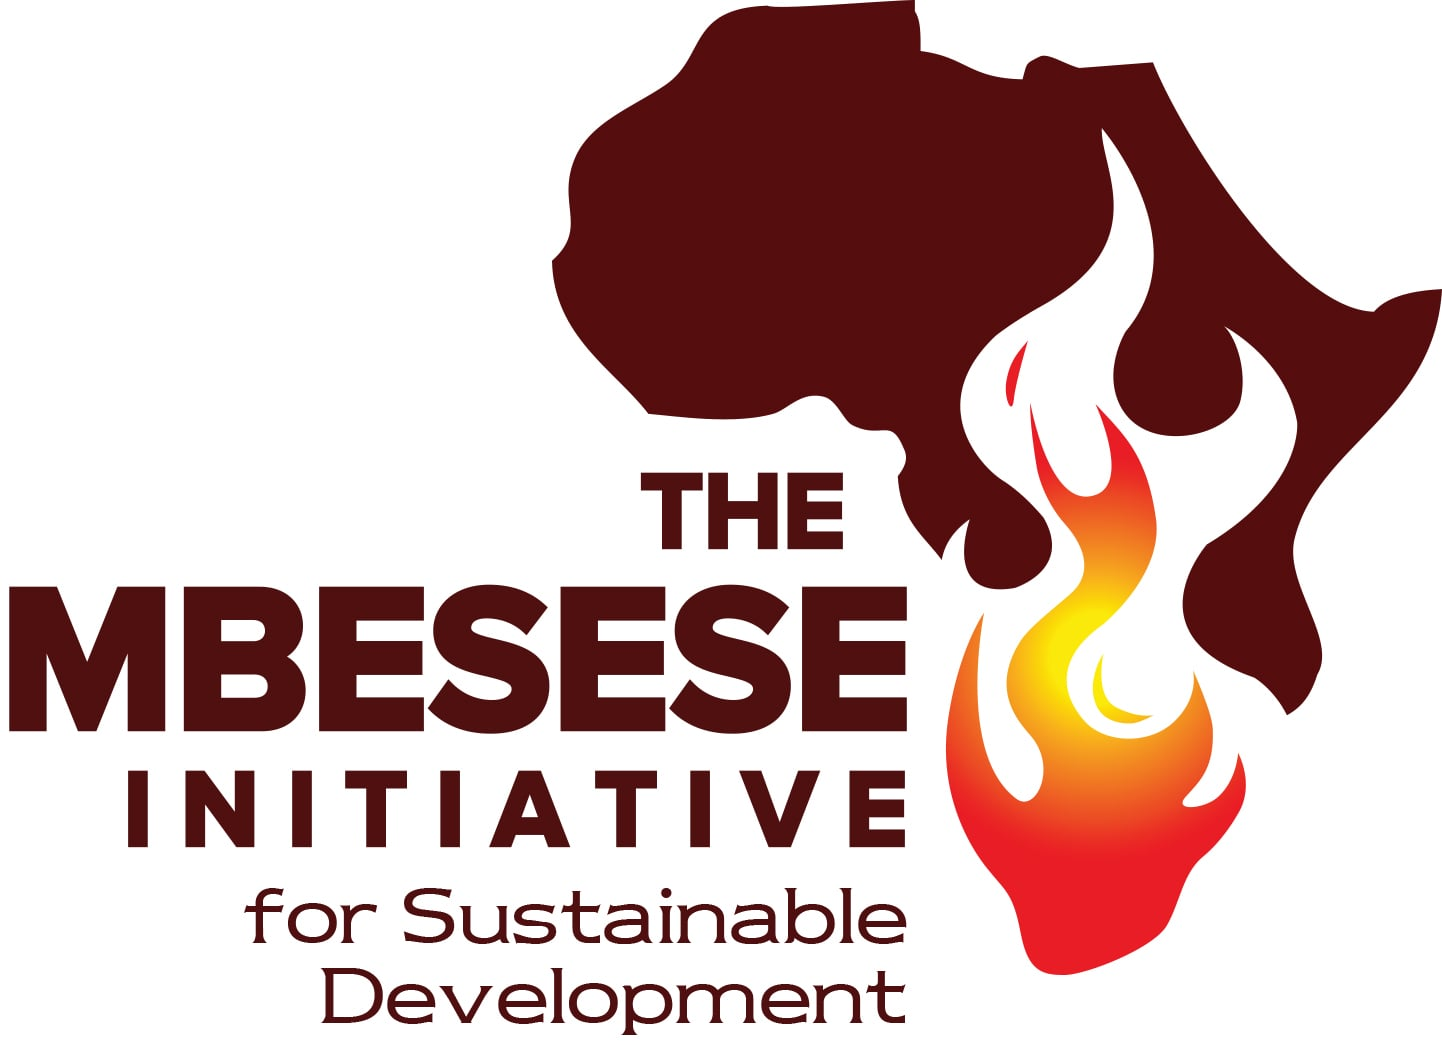 The Mbesese Initiative for Sustainable Development